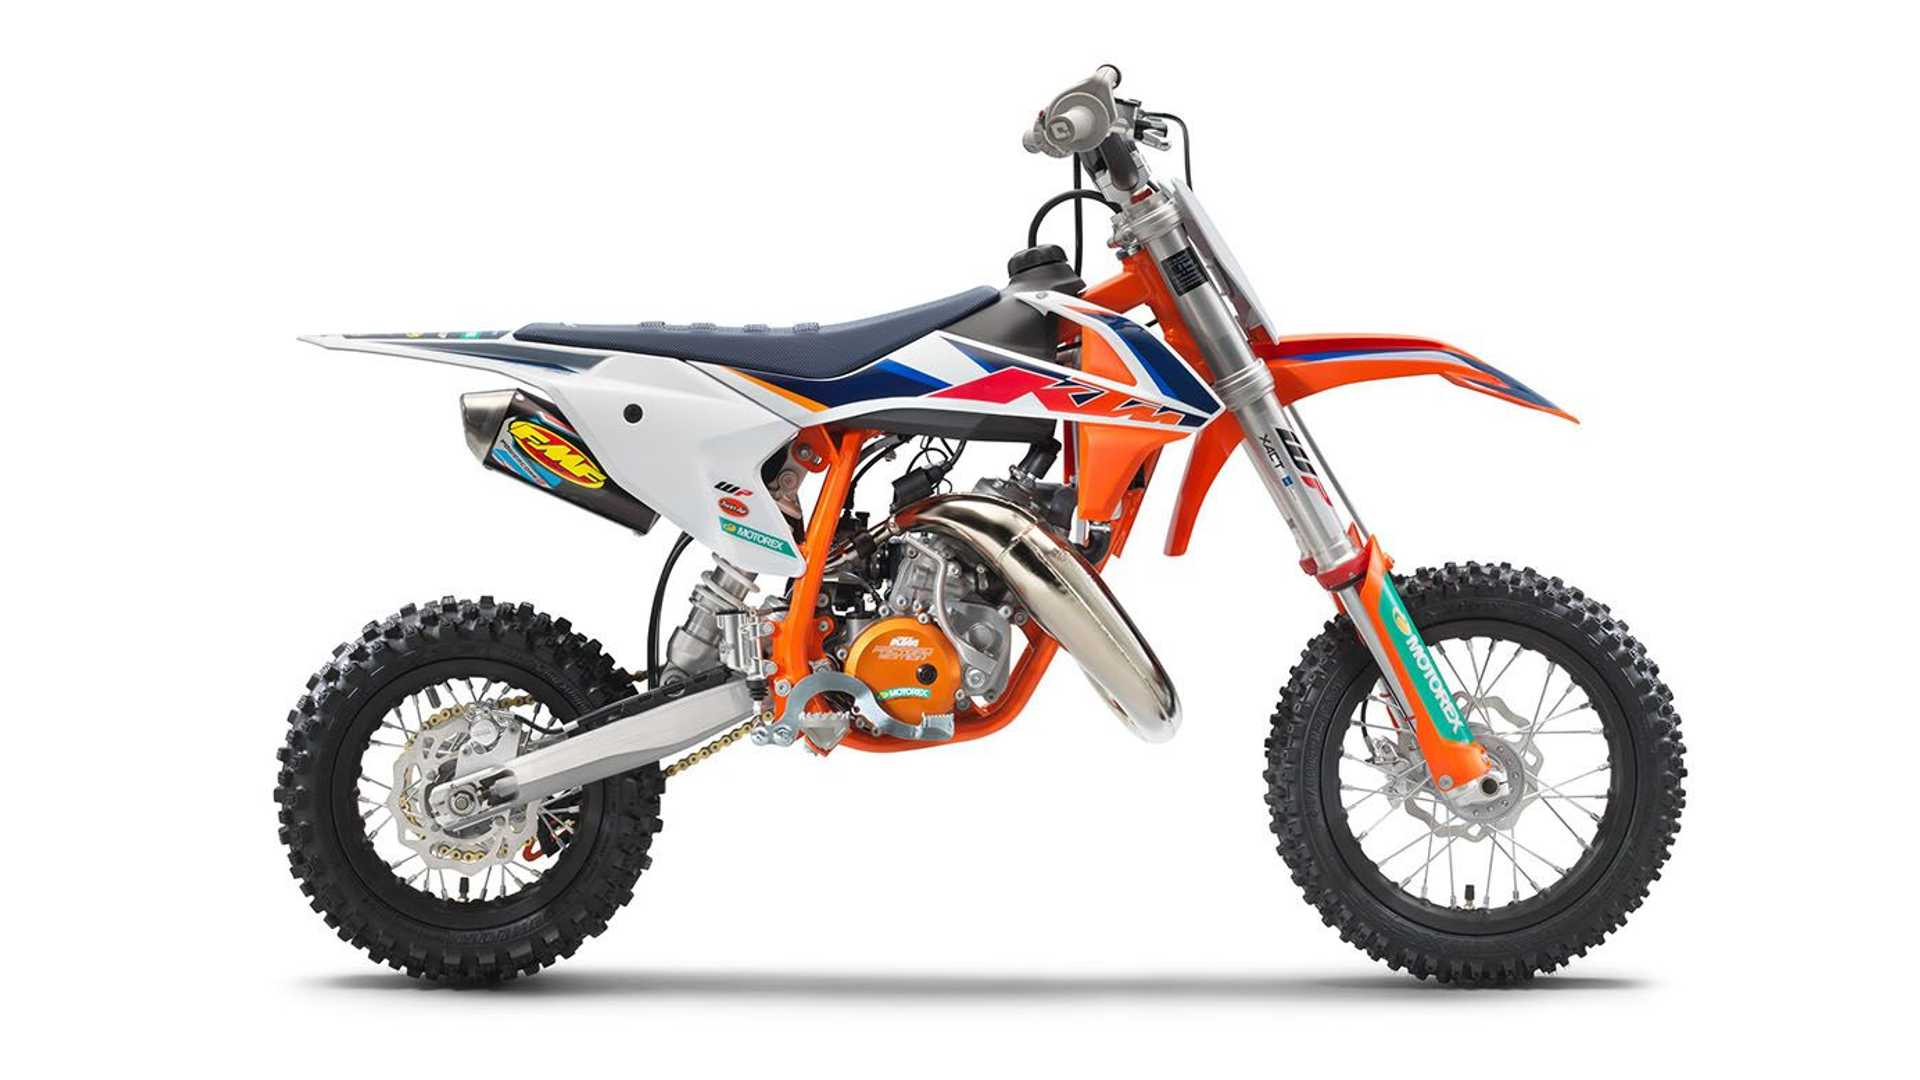 KTM Announces 2021 50 SX Factory Edition For Budding Racers